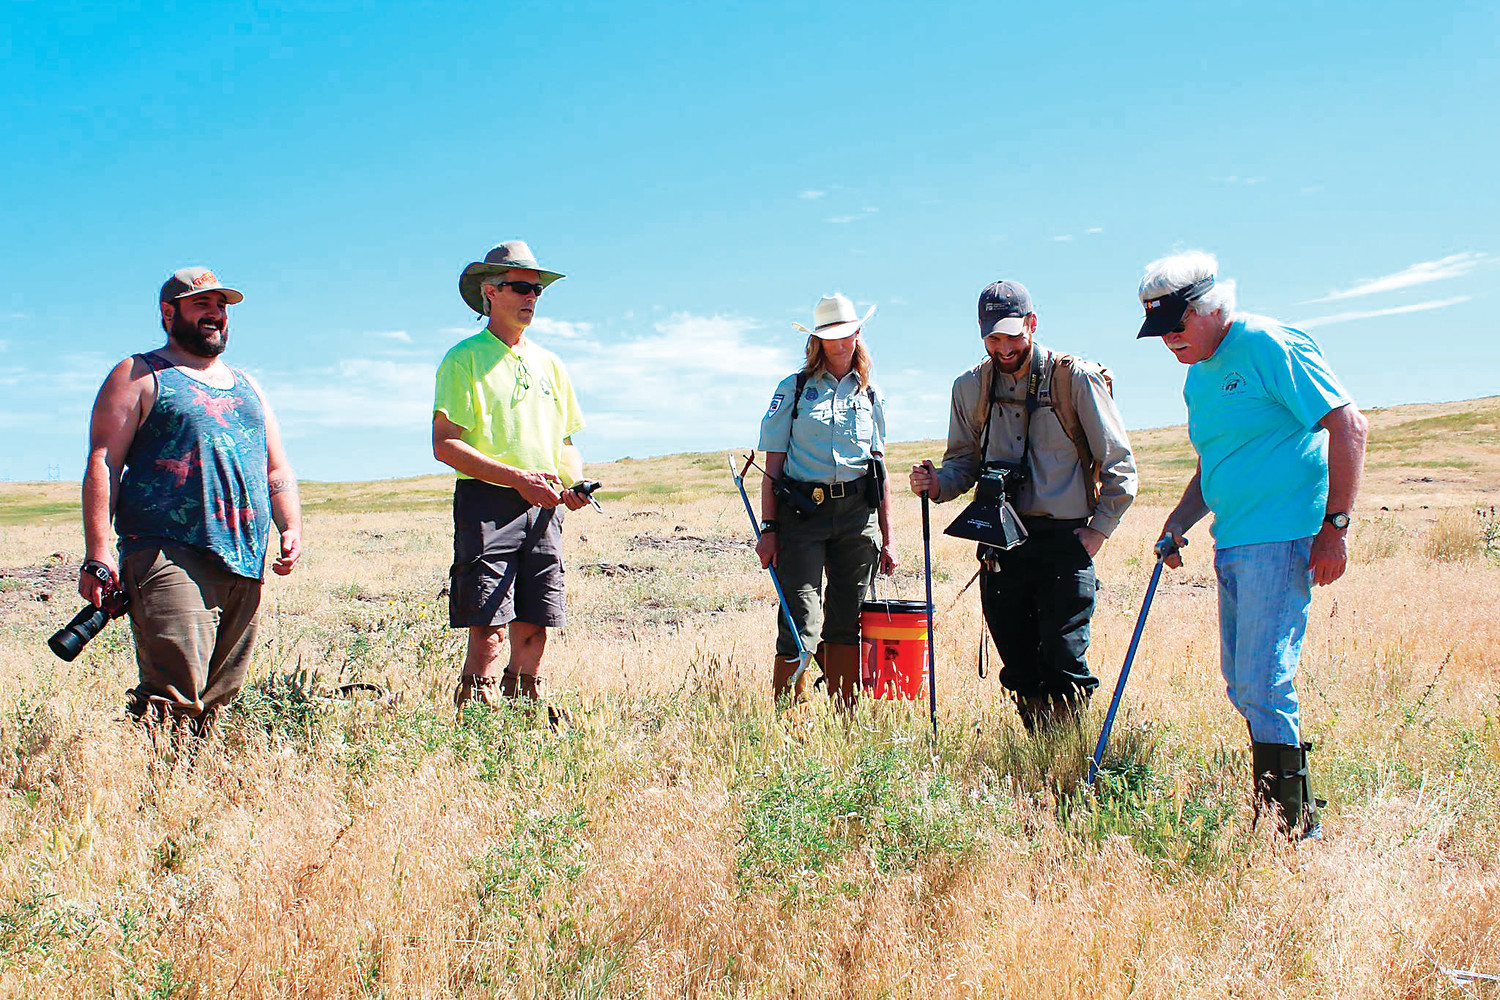 rattlesnake study continues in jeffco